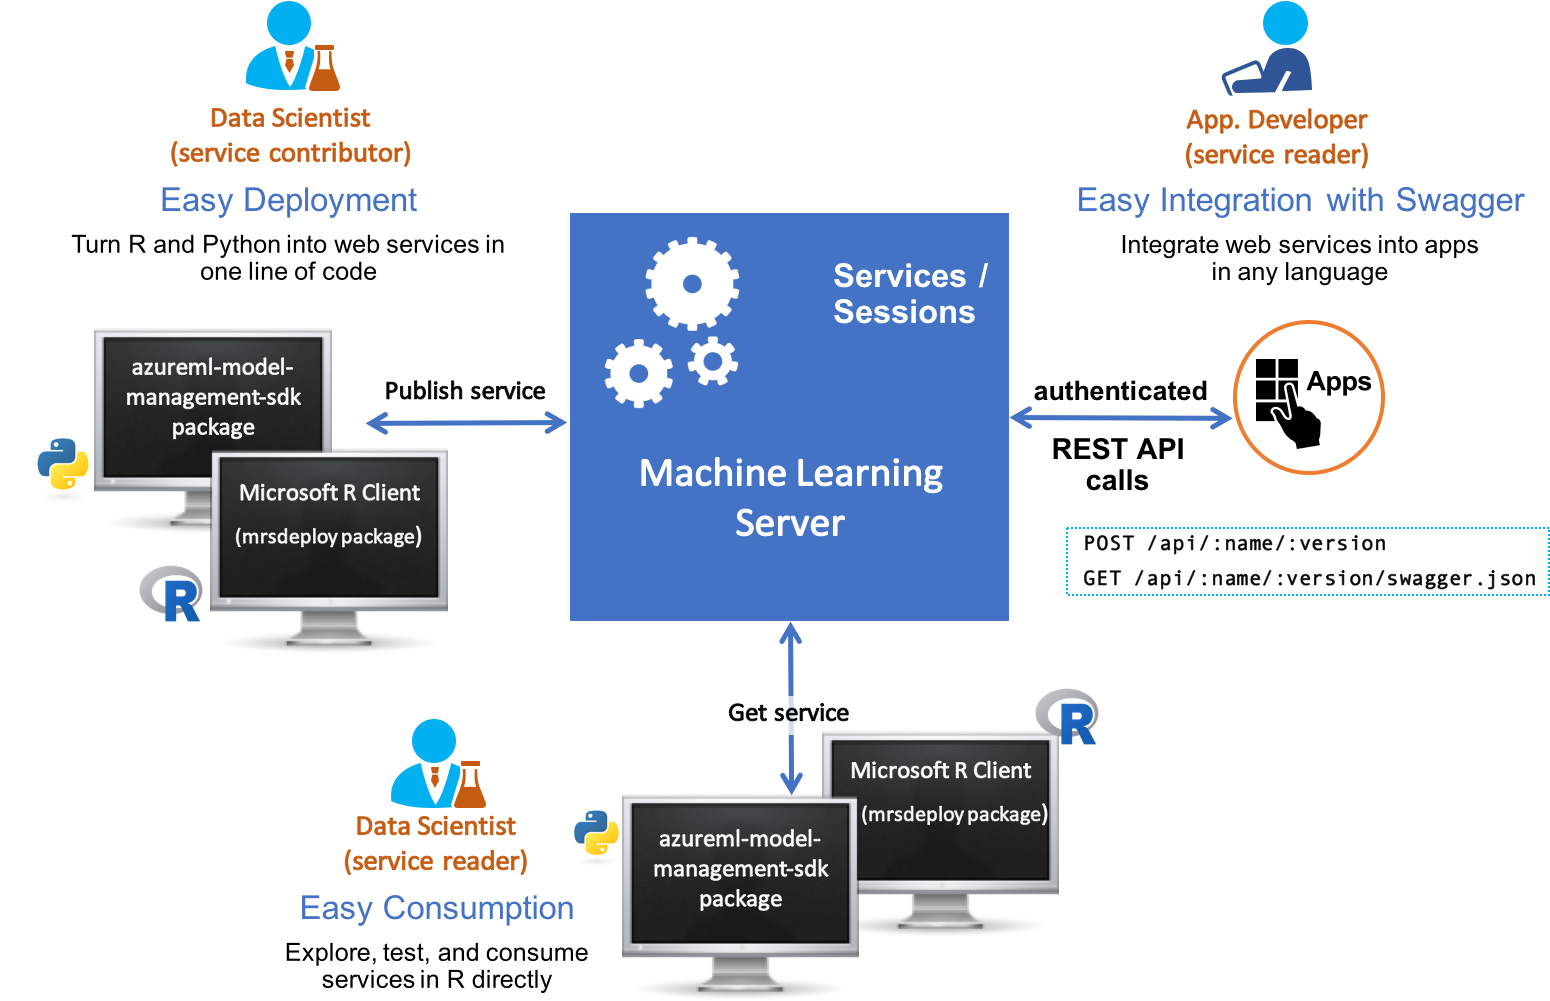 Operationalize Web Services, R &models With Machine - Microsoft Machine Learning Server (1574x1017), Png Download